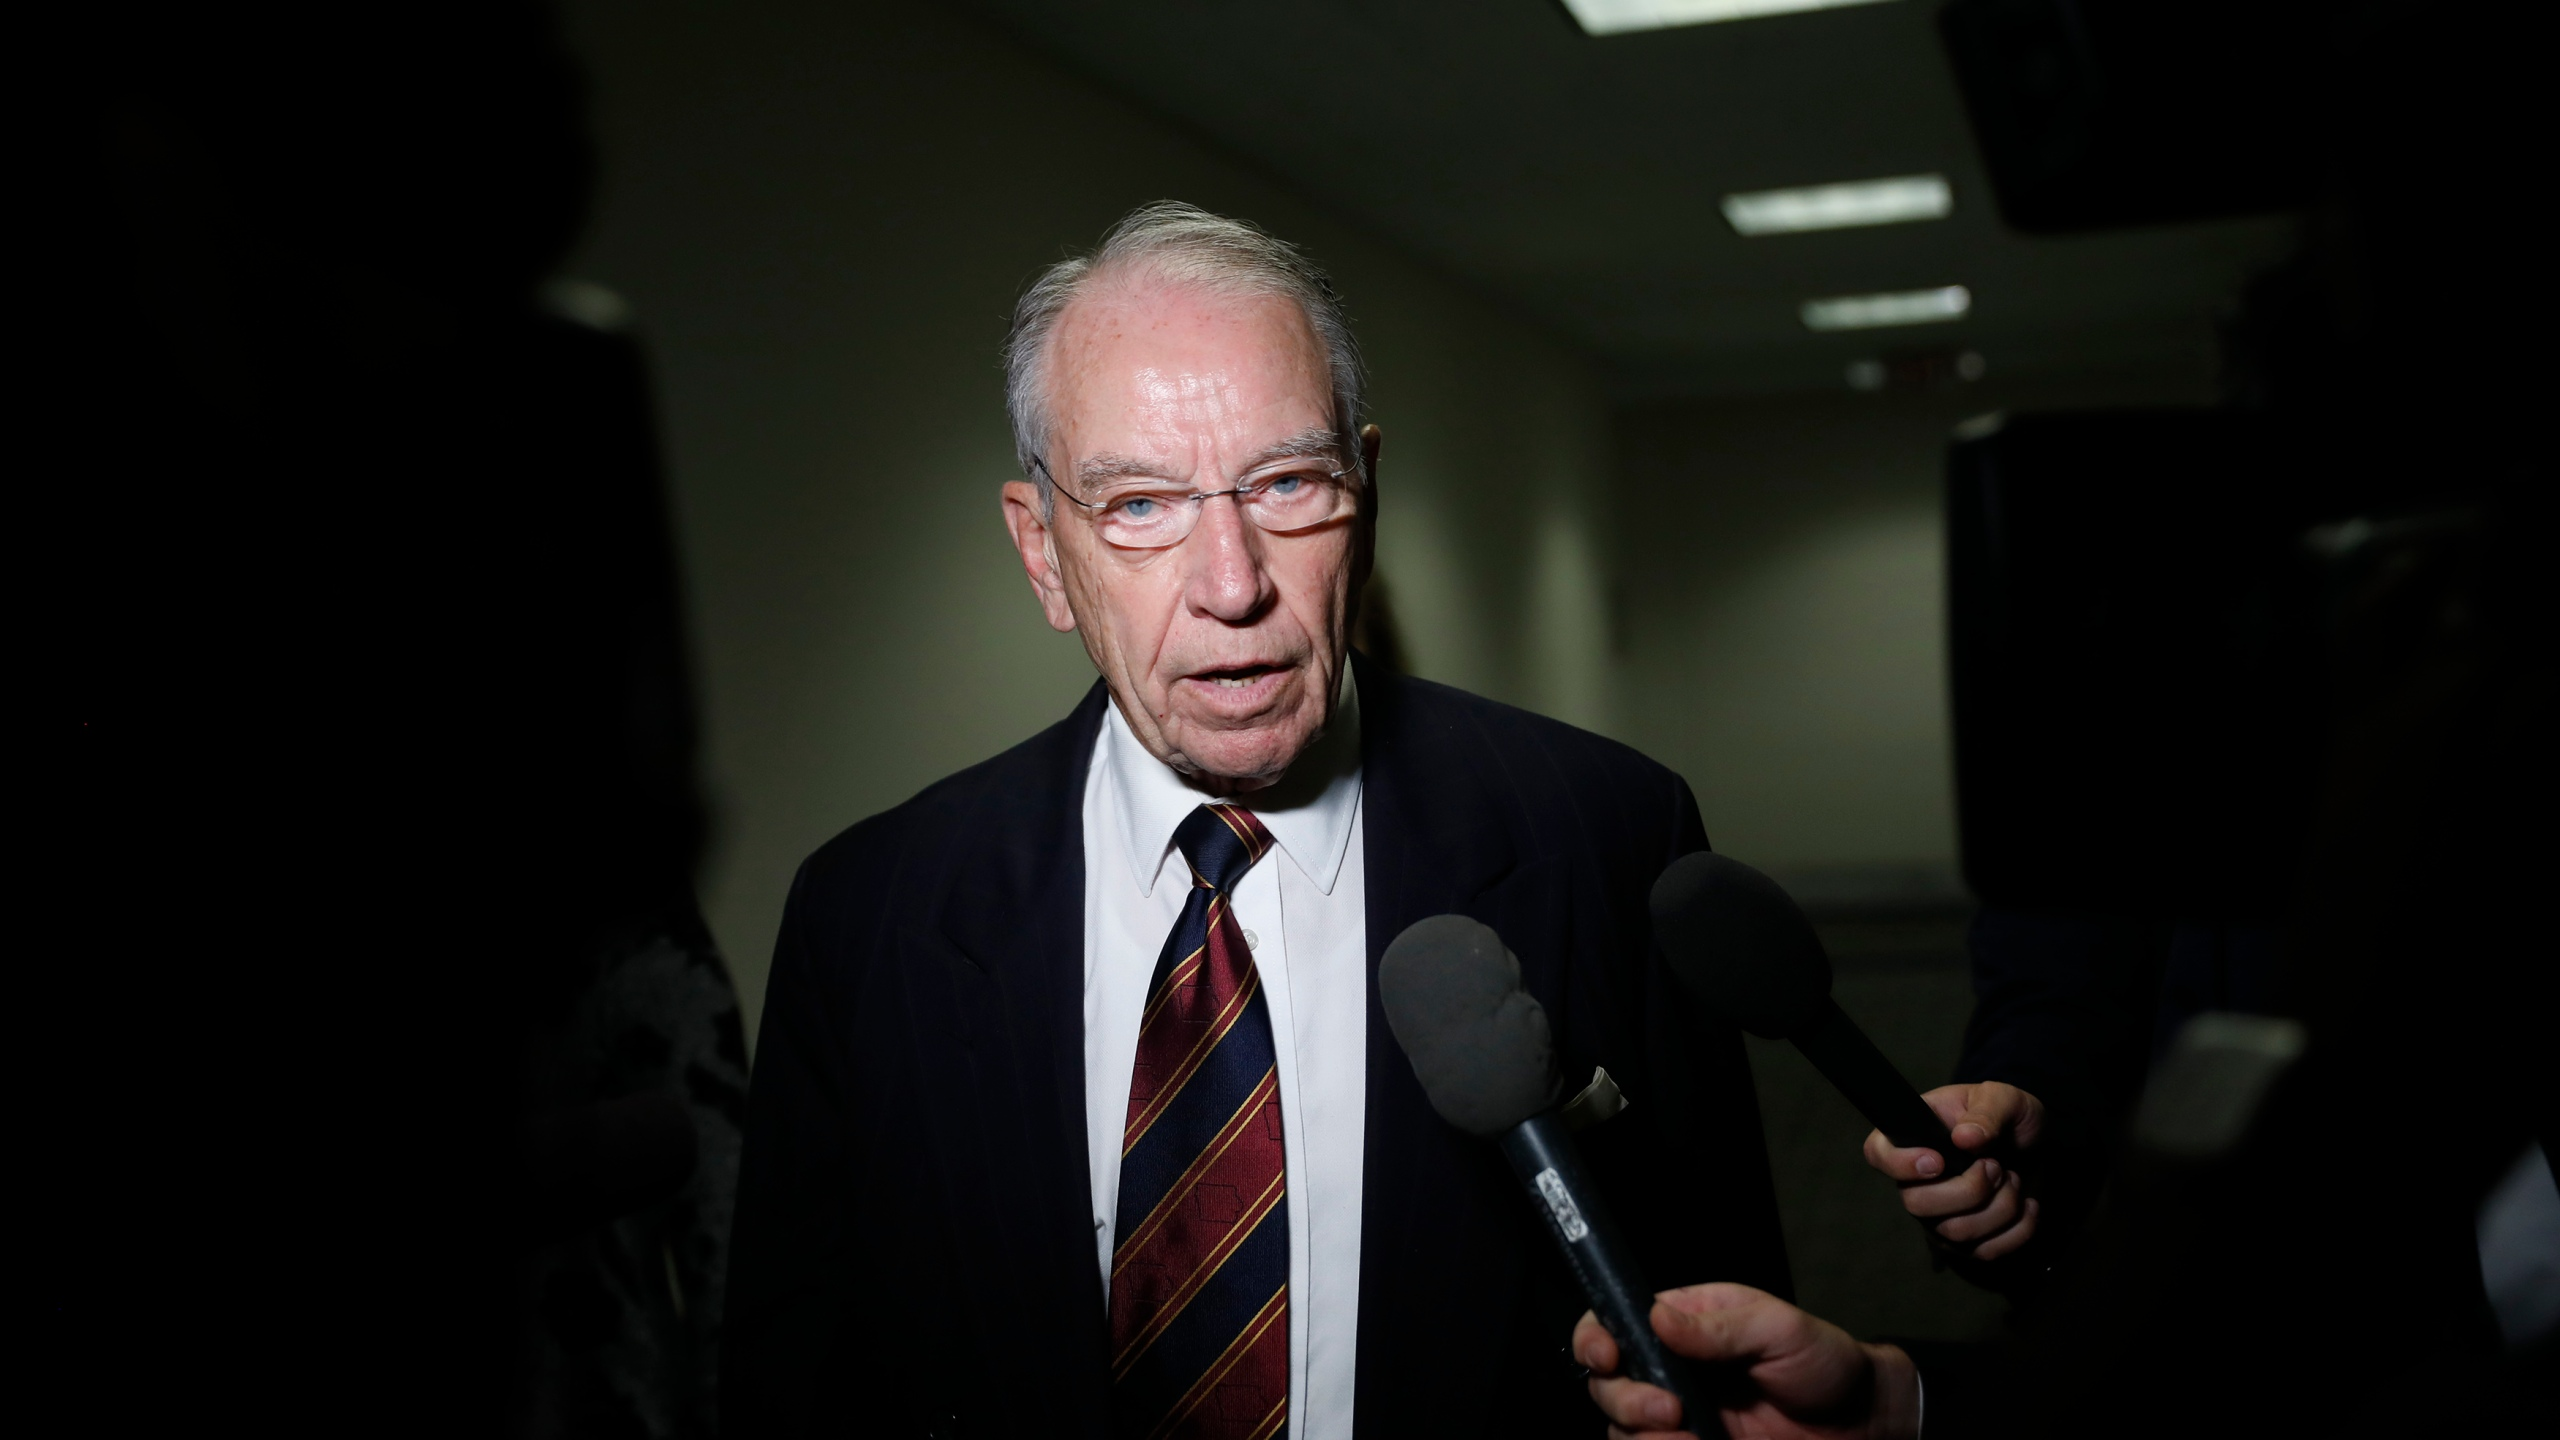 Sen. Chuck Grassley, R-Iowa, speaks with reporters about Supreme Court nominee Brett Kavanaugh on Capitol Hill on Sept.18, 2018 in Washington, D.C. (Credit: Aaron P. Bernstein/Getty Images)